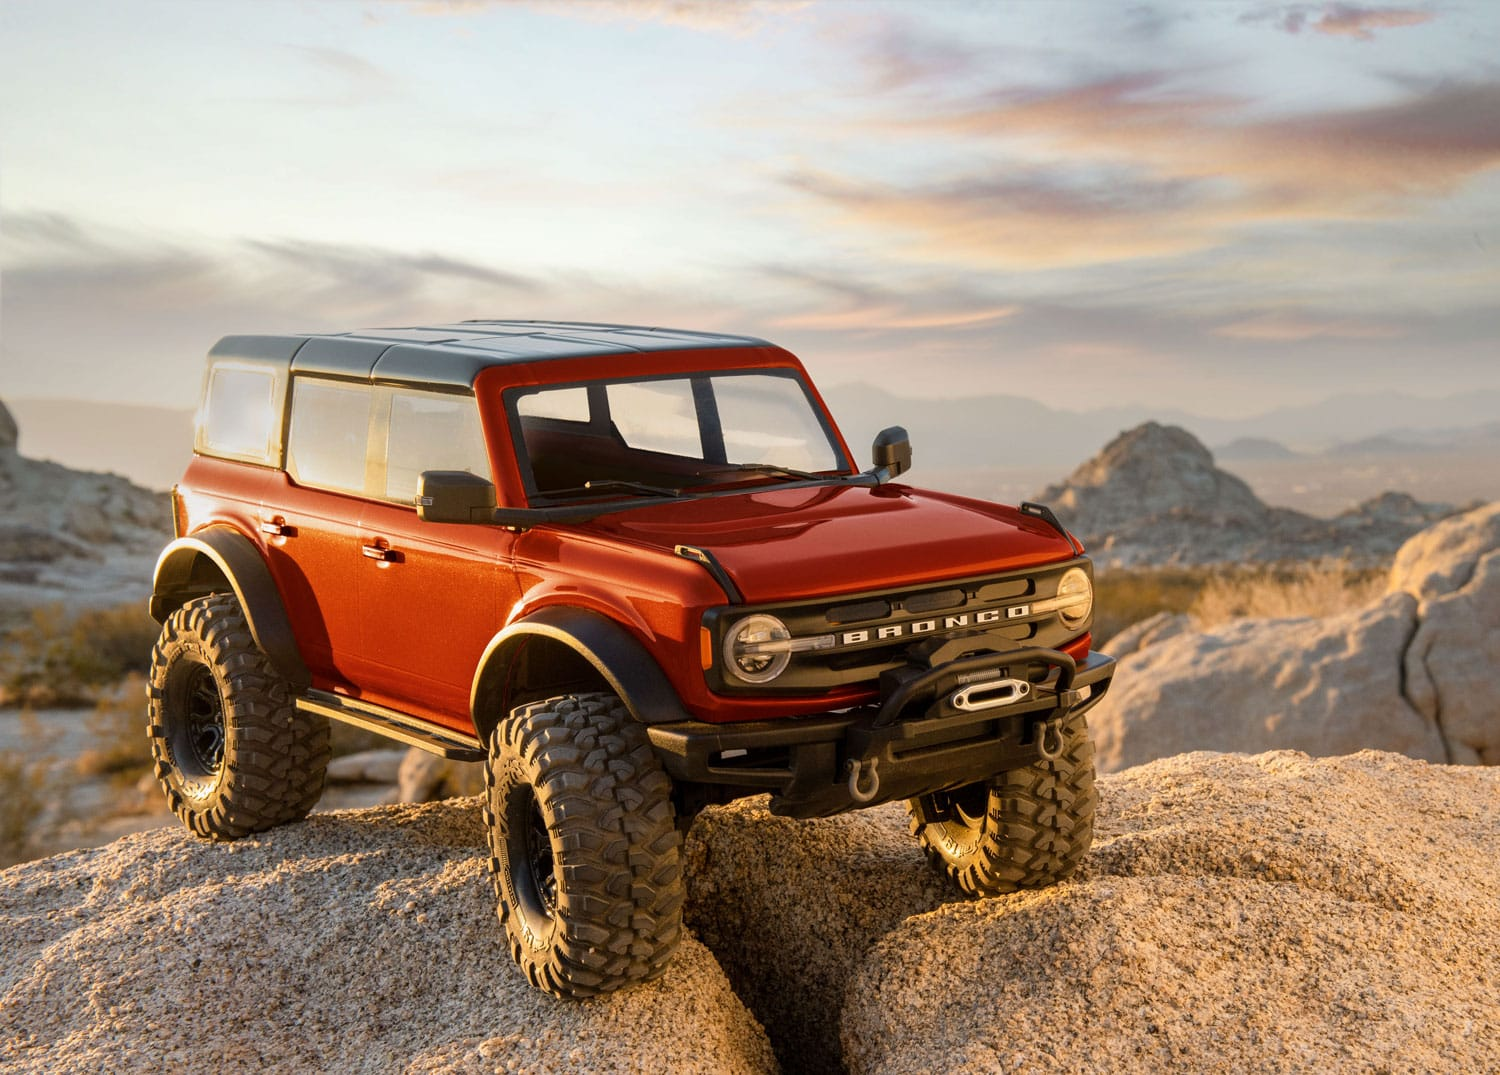 See it in Action: Traxxas TRX-4 2021 Ford Bronco [Video]